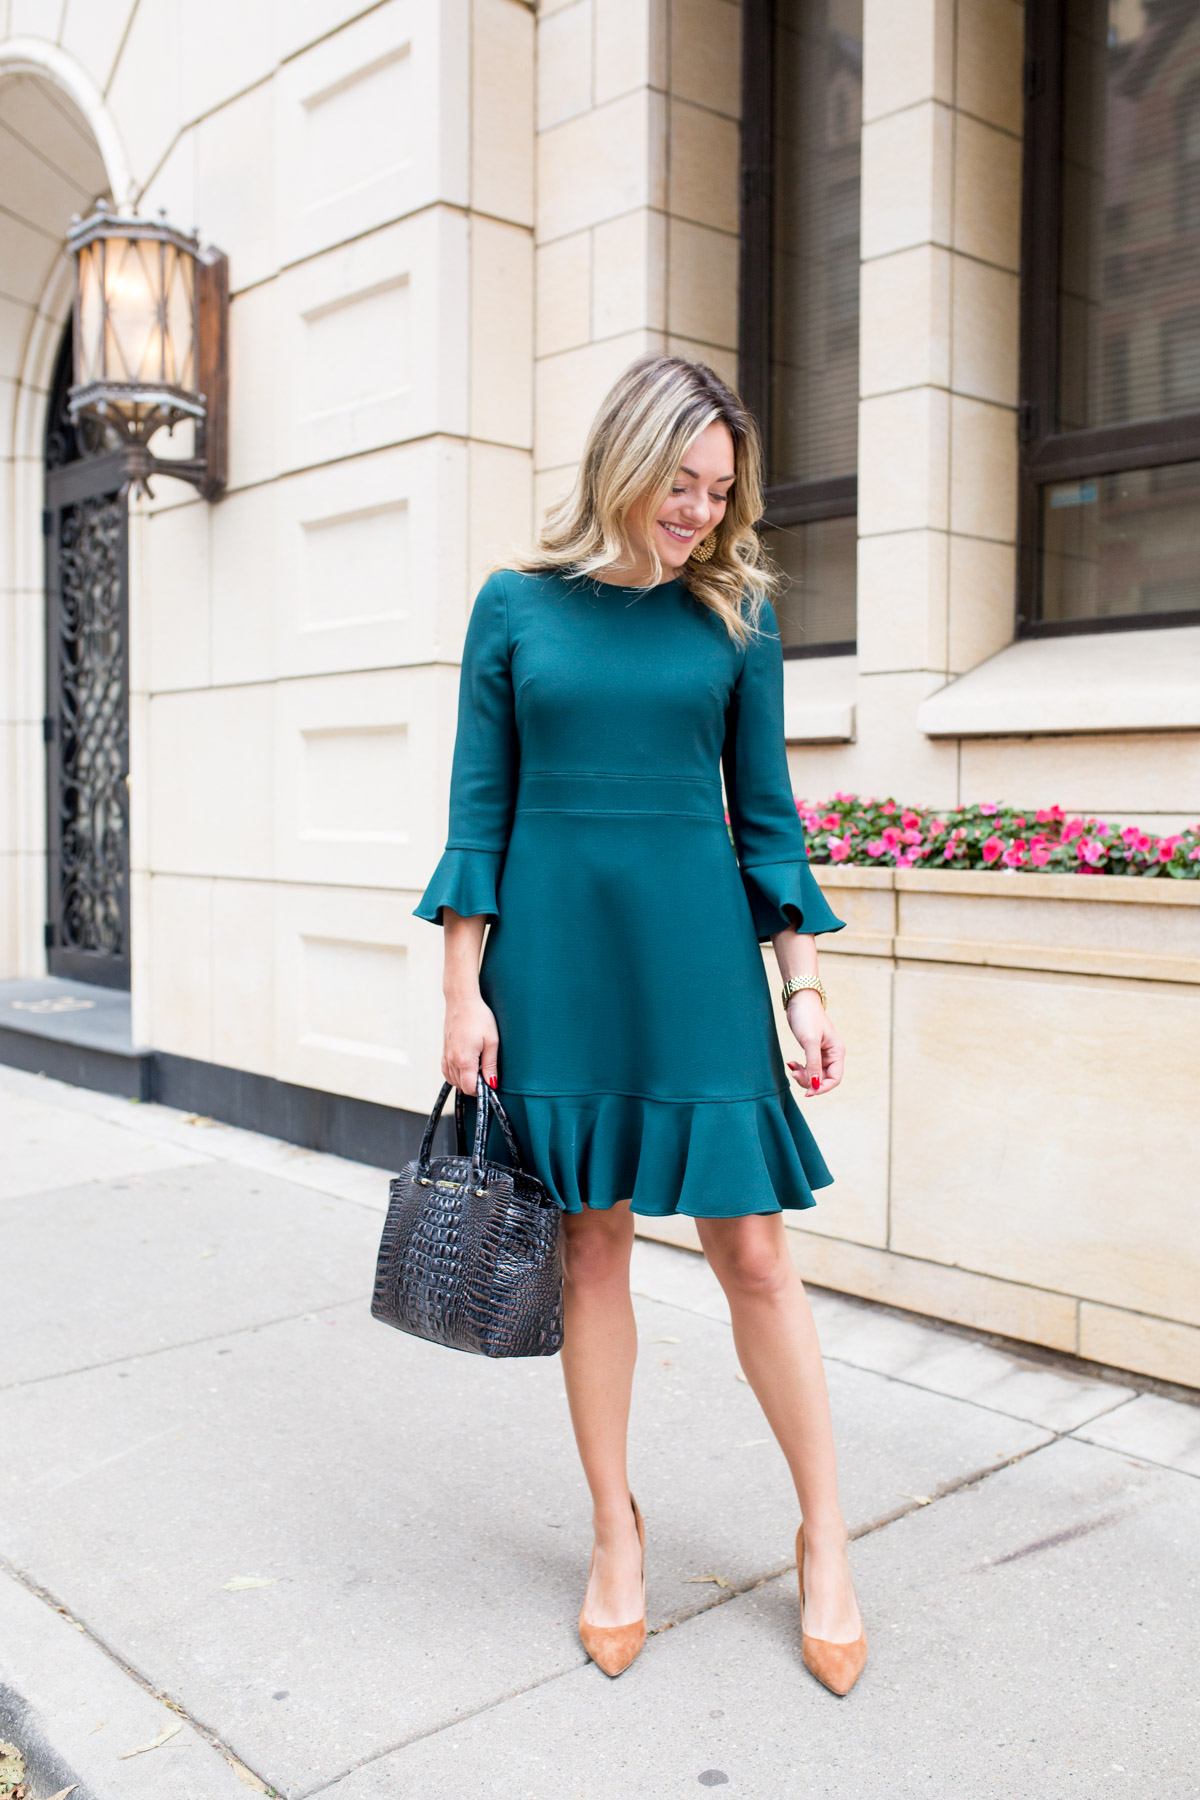 Chicago beauty blogger Jessica Sturdy wearing a green ruffle dress for work.